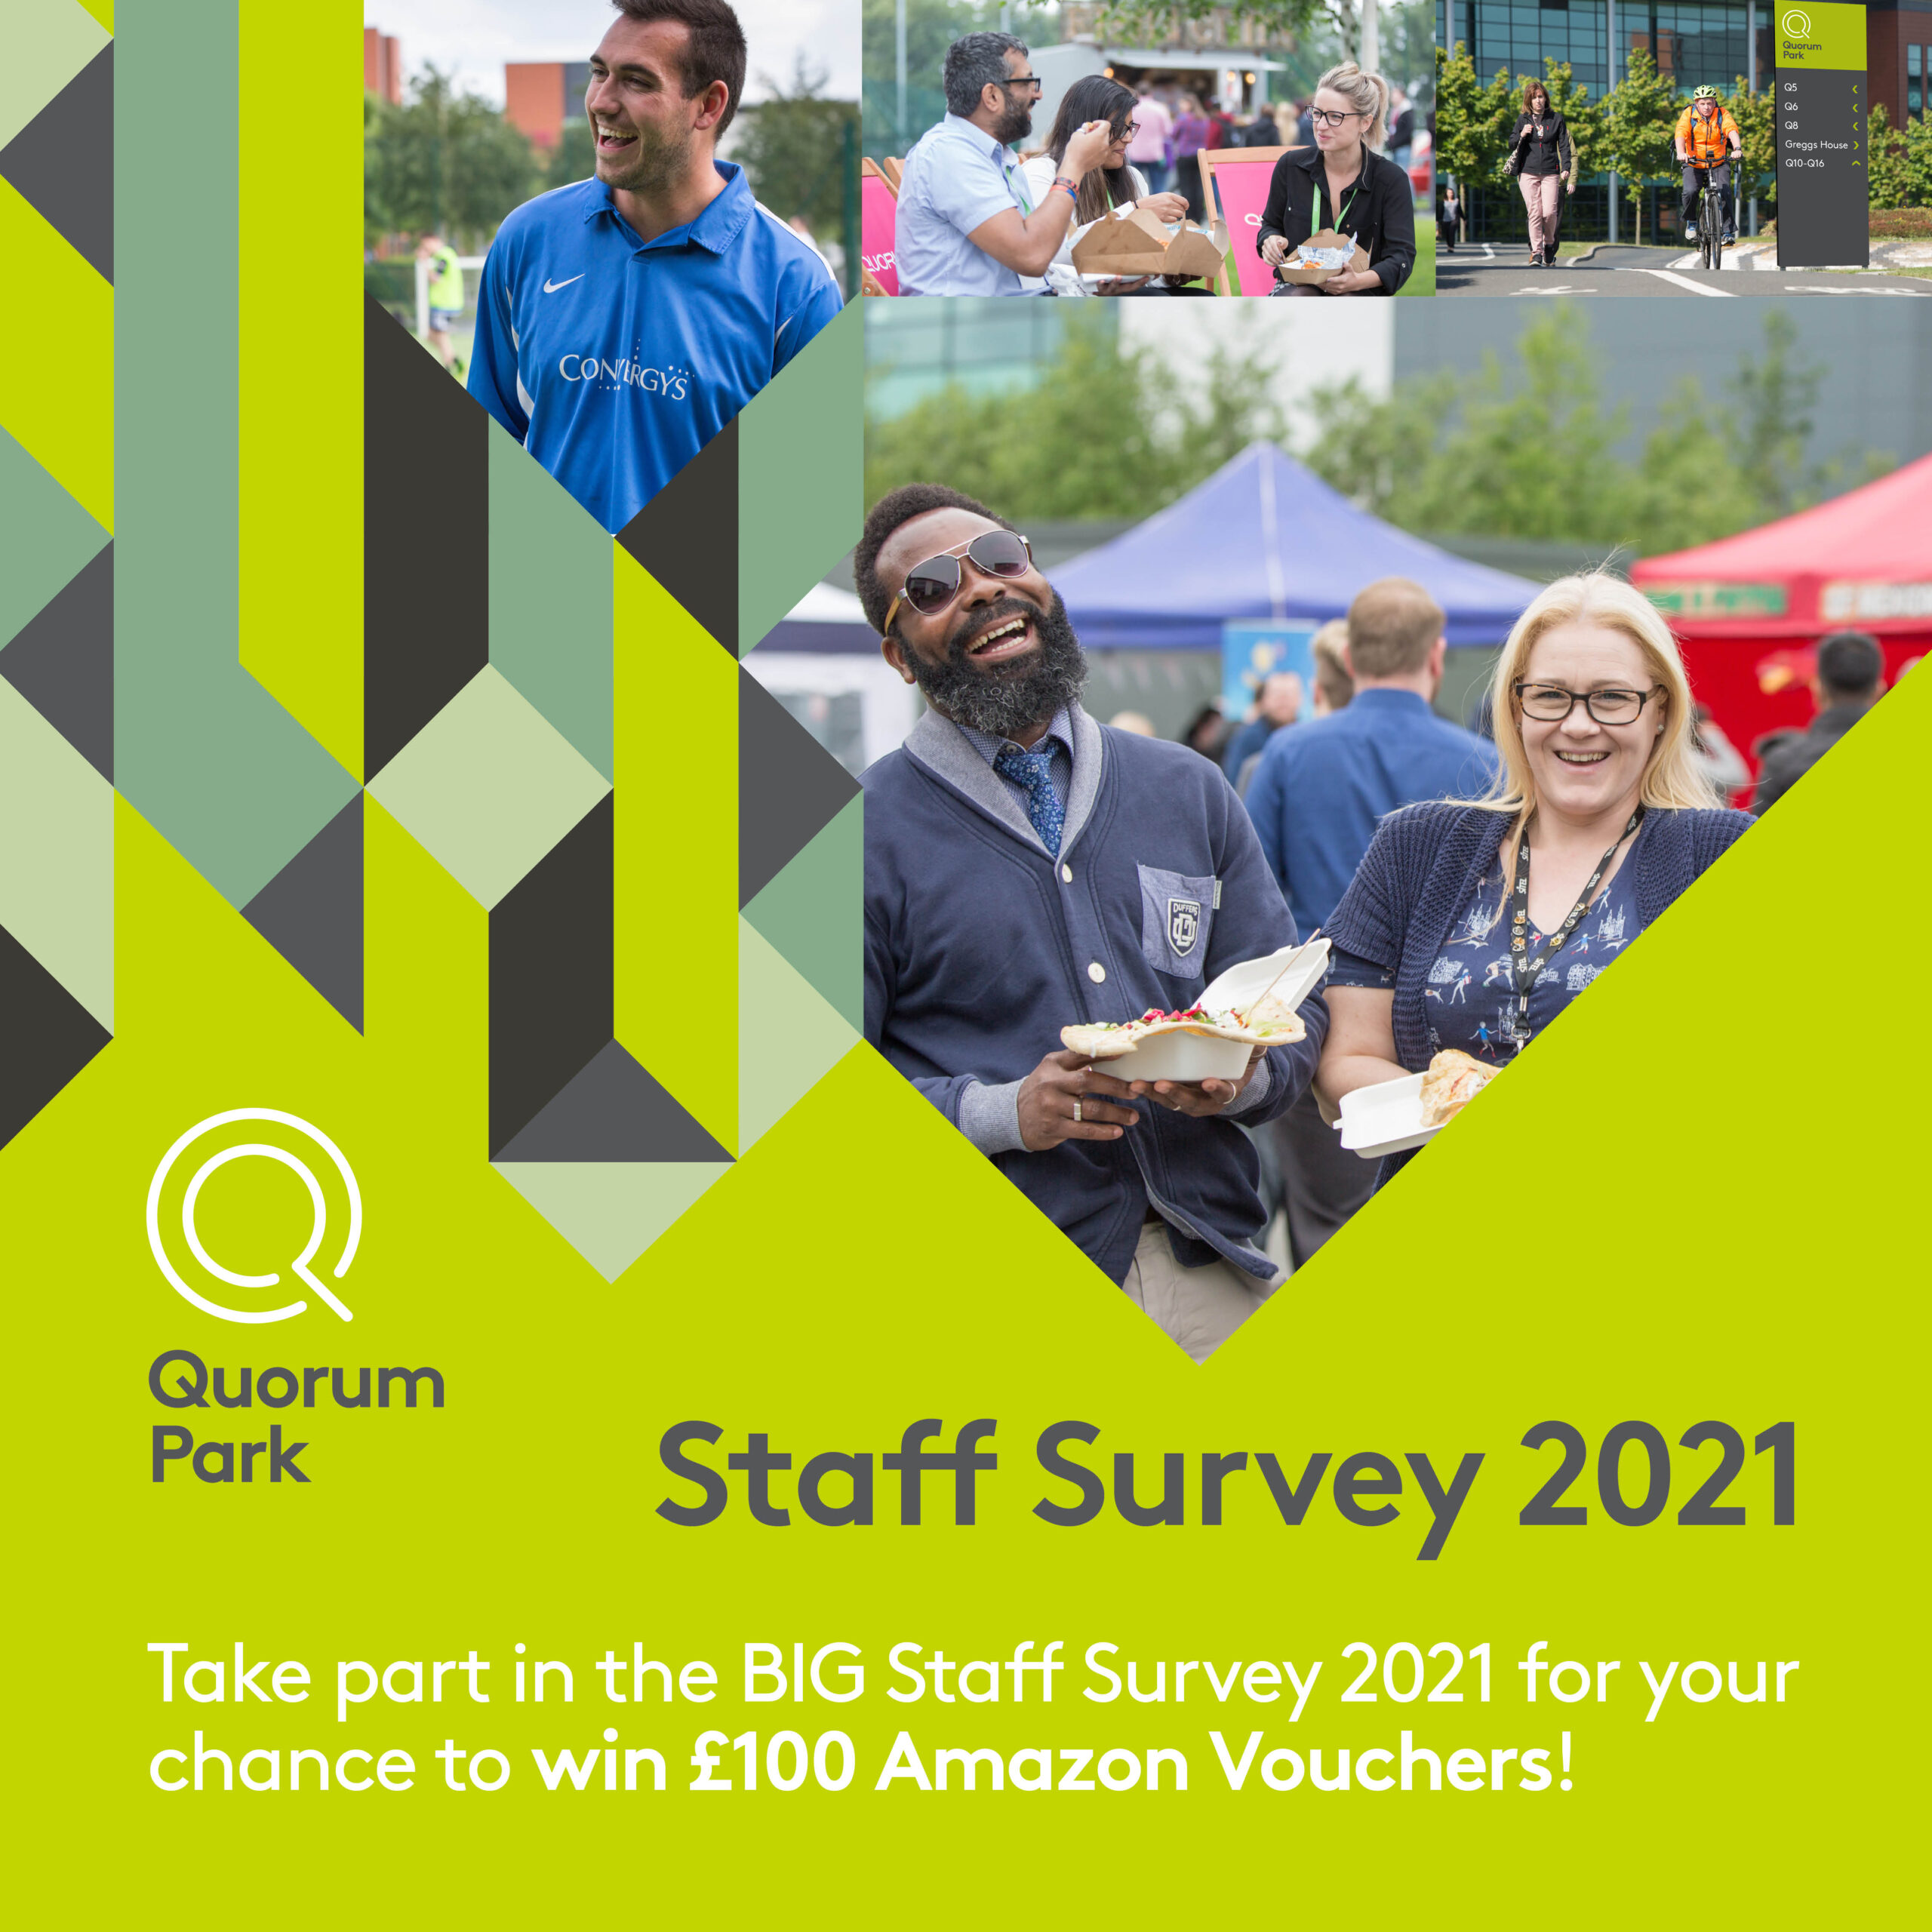 The Hub launch The Big Staff Survey 2021